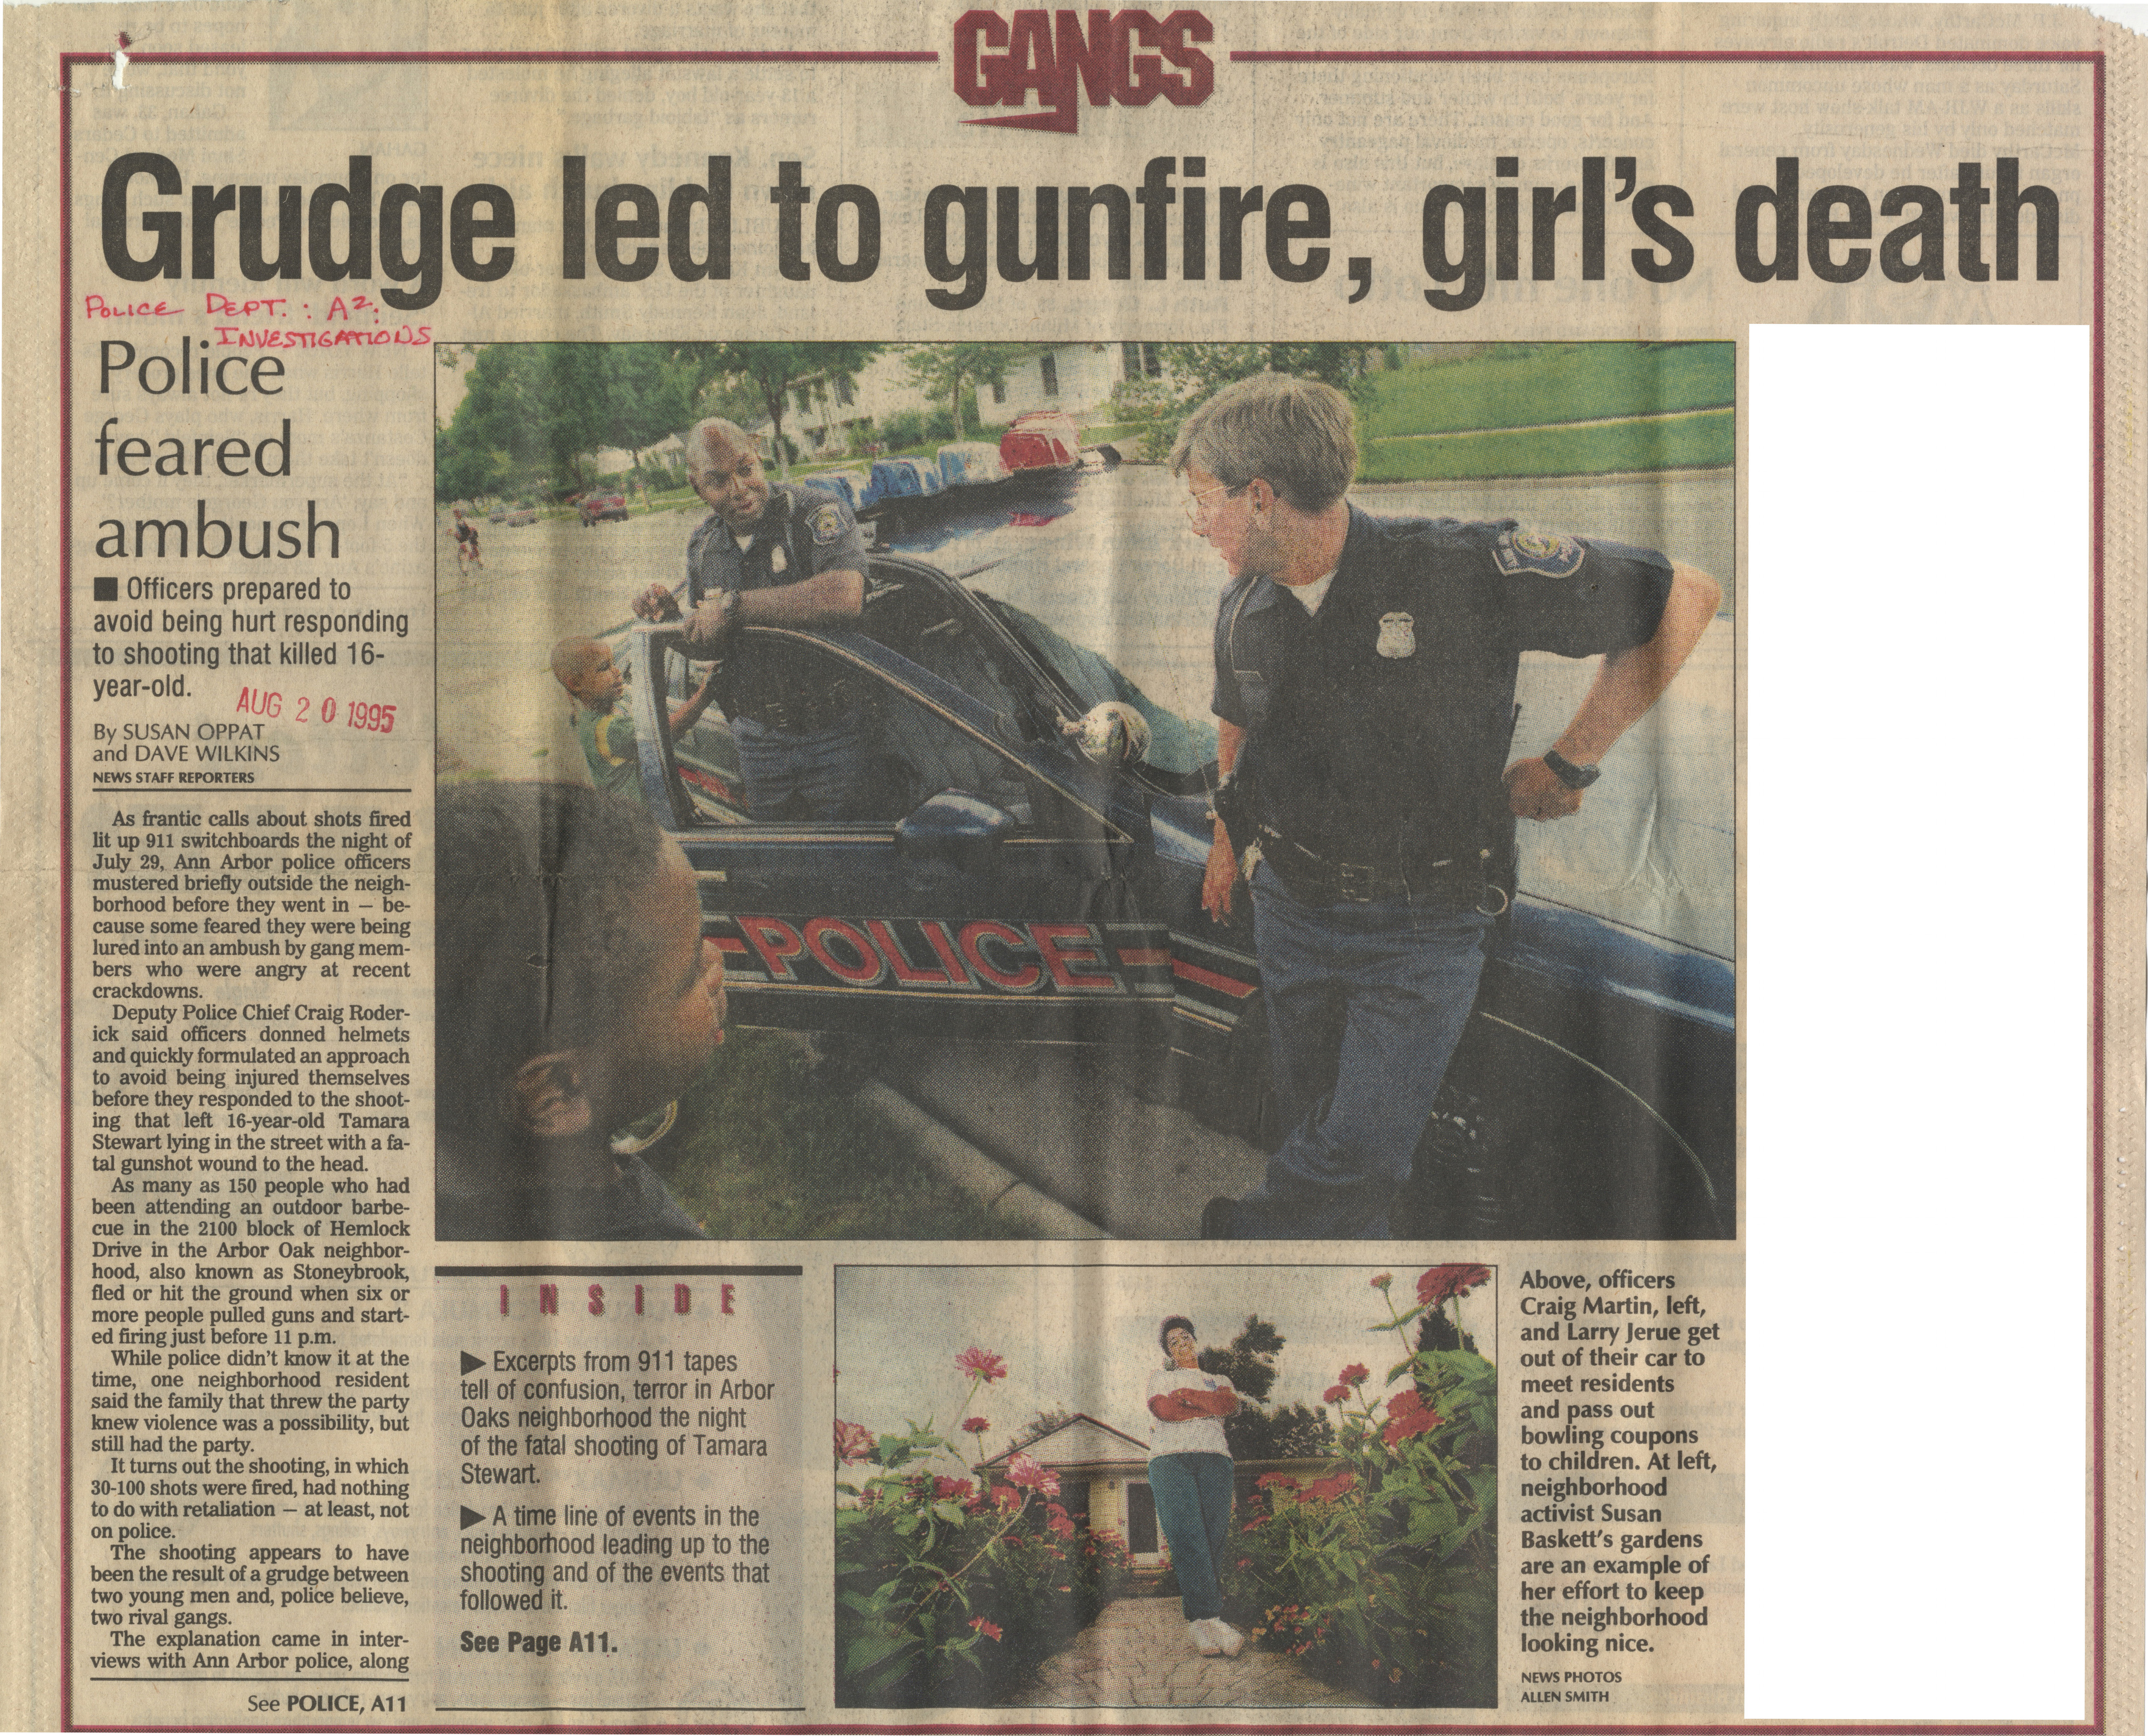 Grudge Led To Gunfire, Girl's Death image